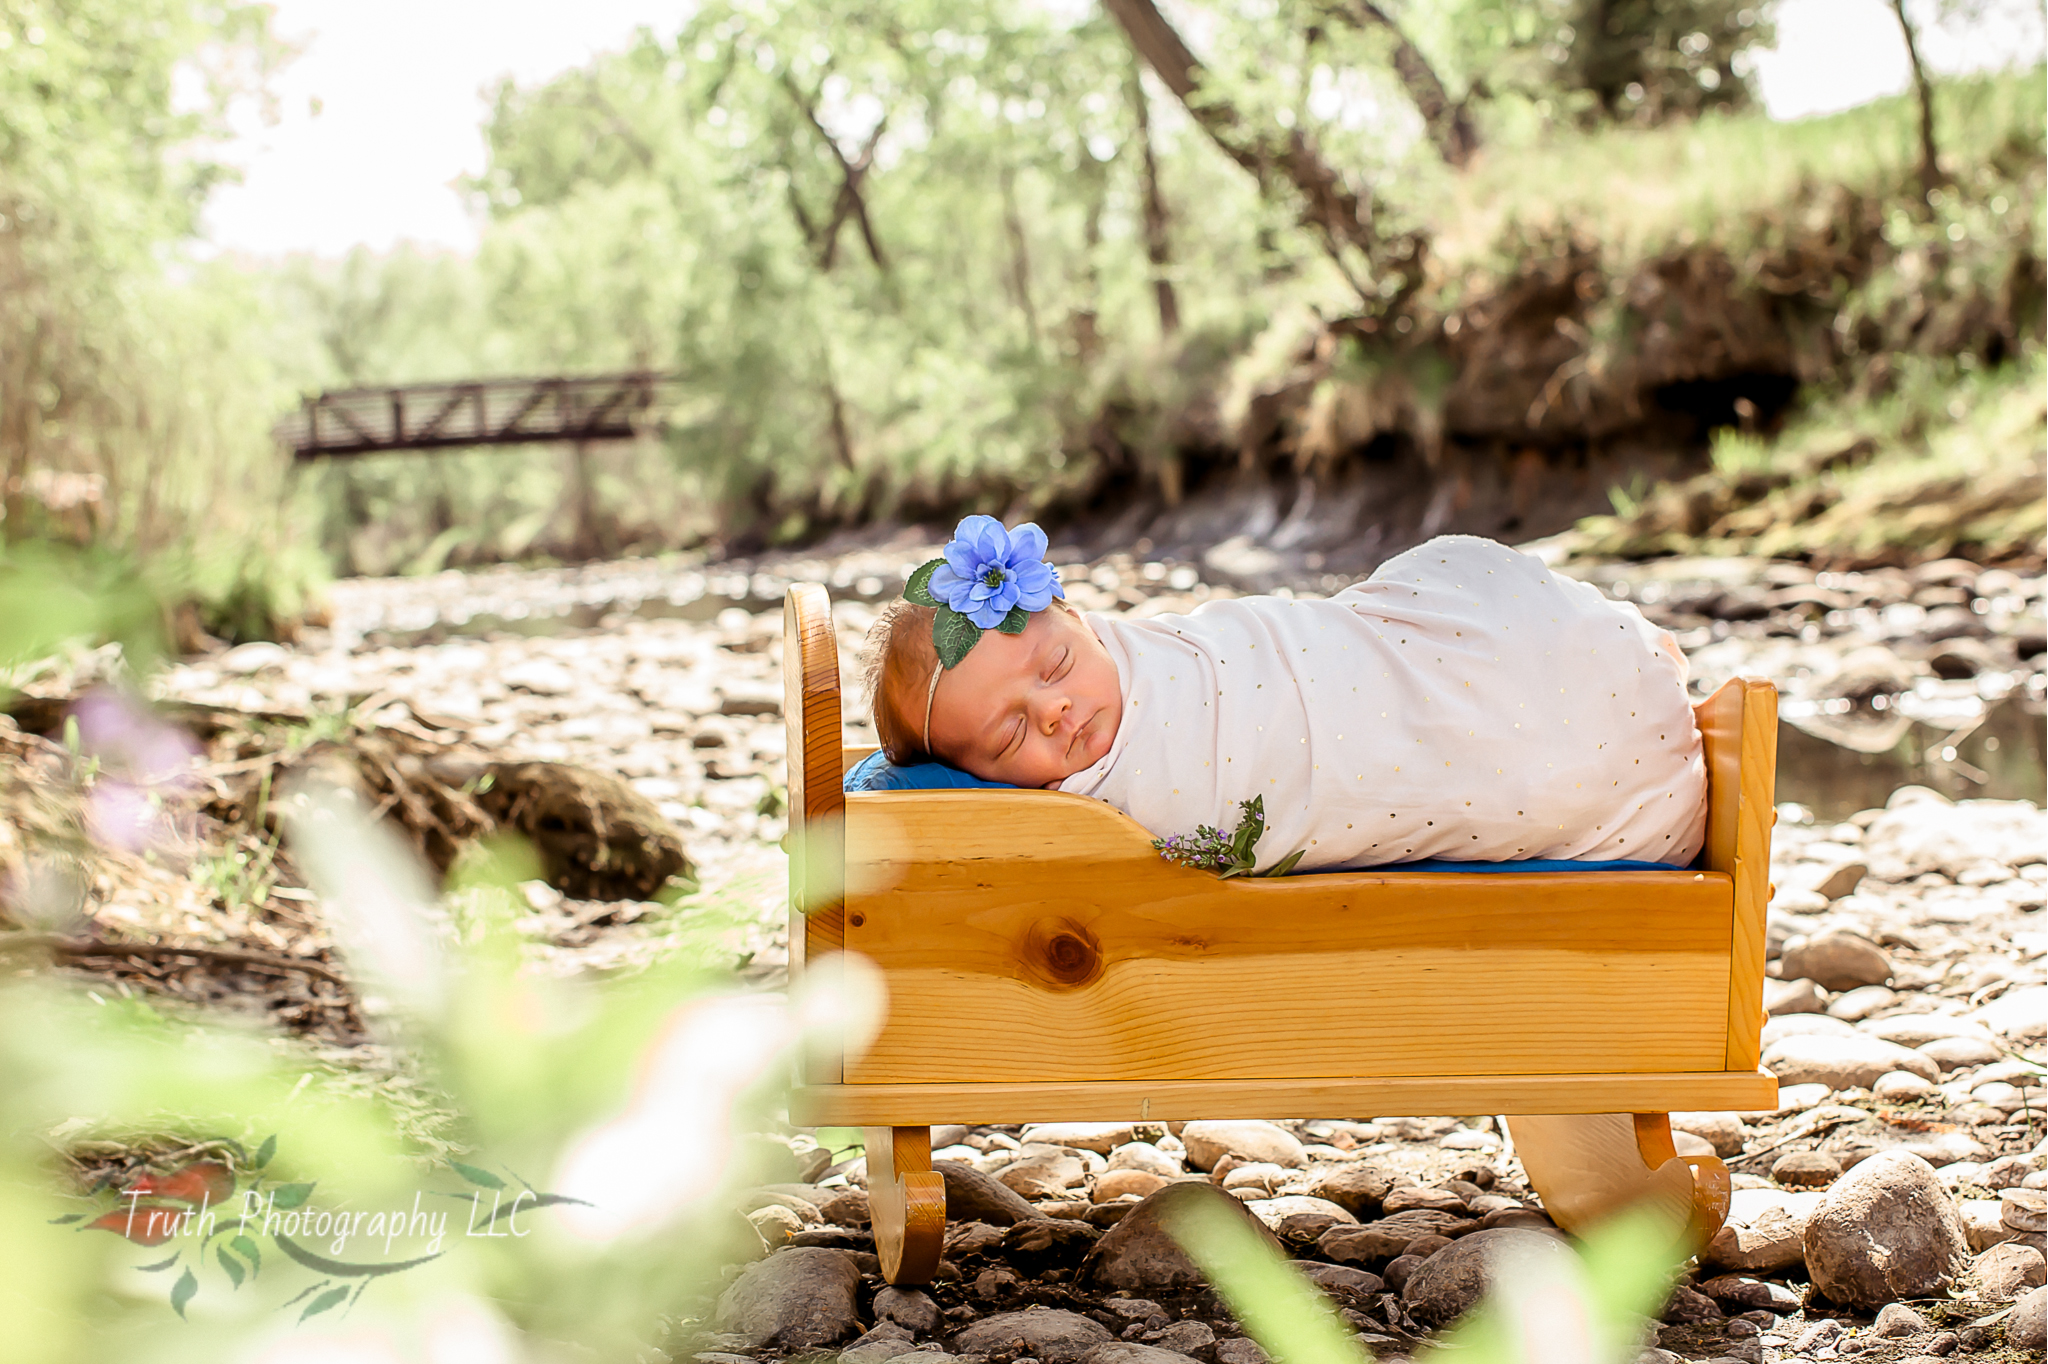 Truth-Photography-Denver-Outdoor-infant-photography.jpg